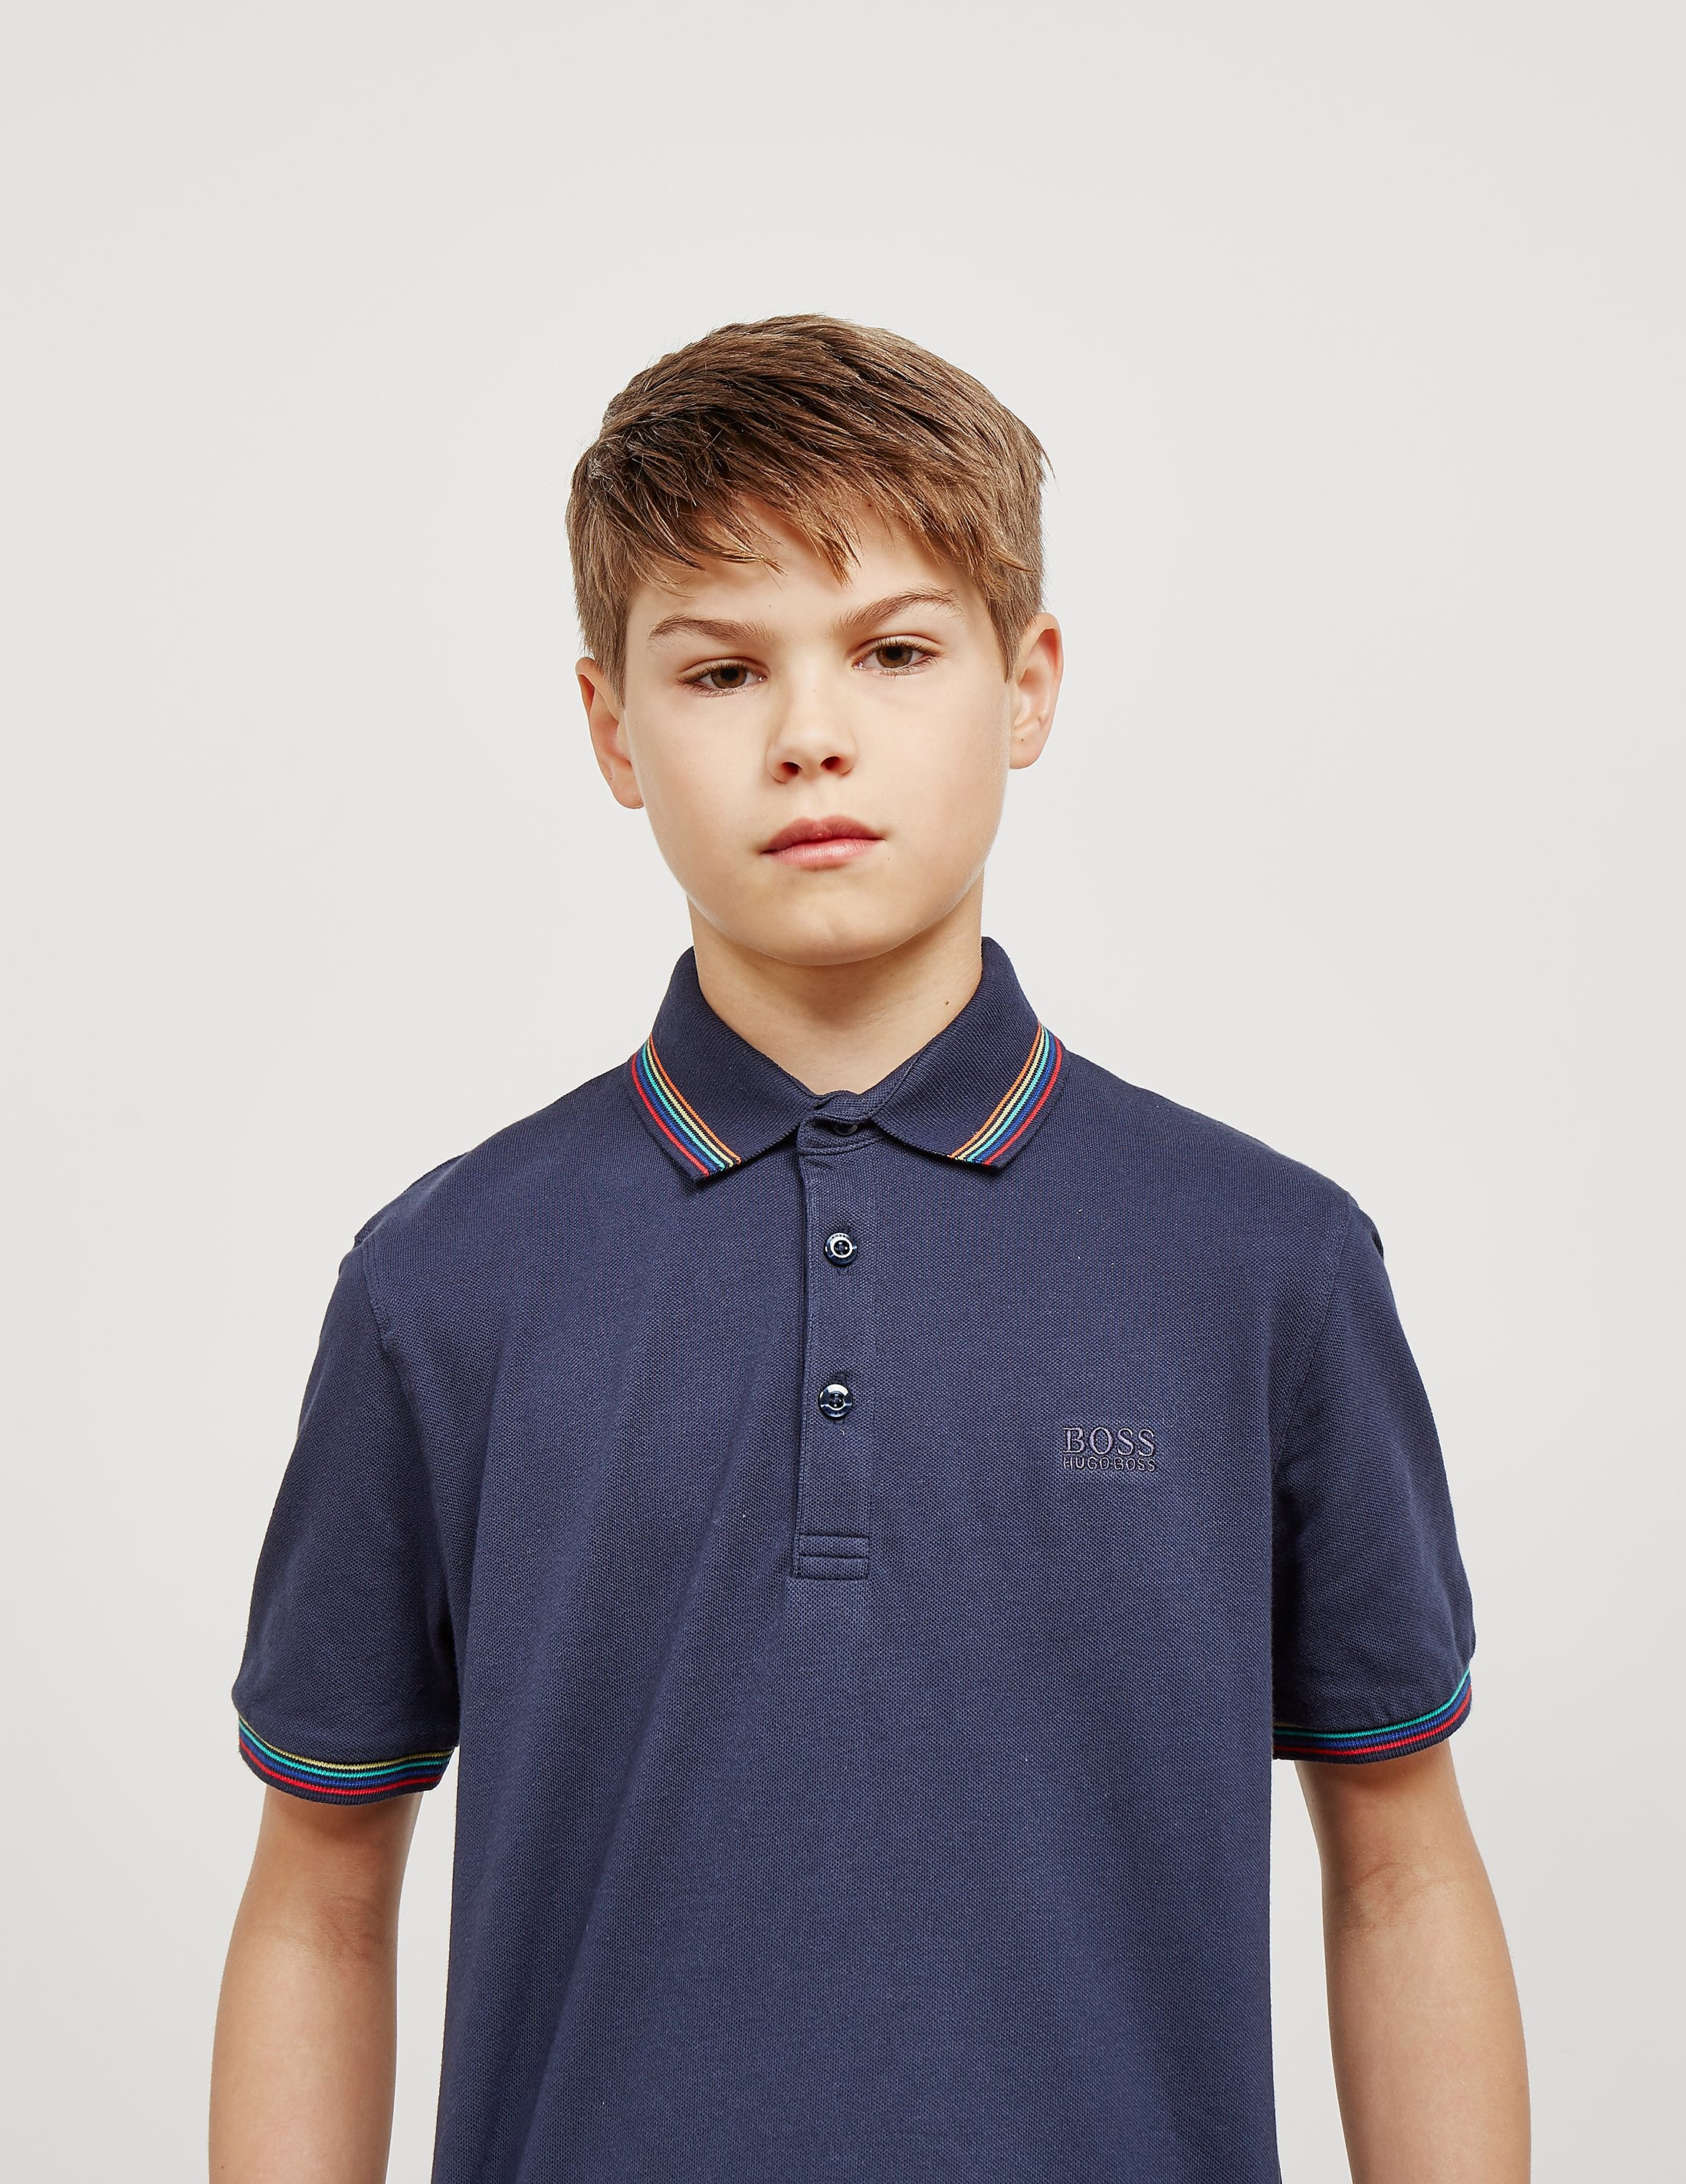 BOSS Special Short Sleeve Polo Shirt